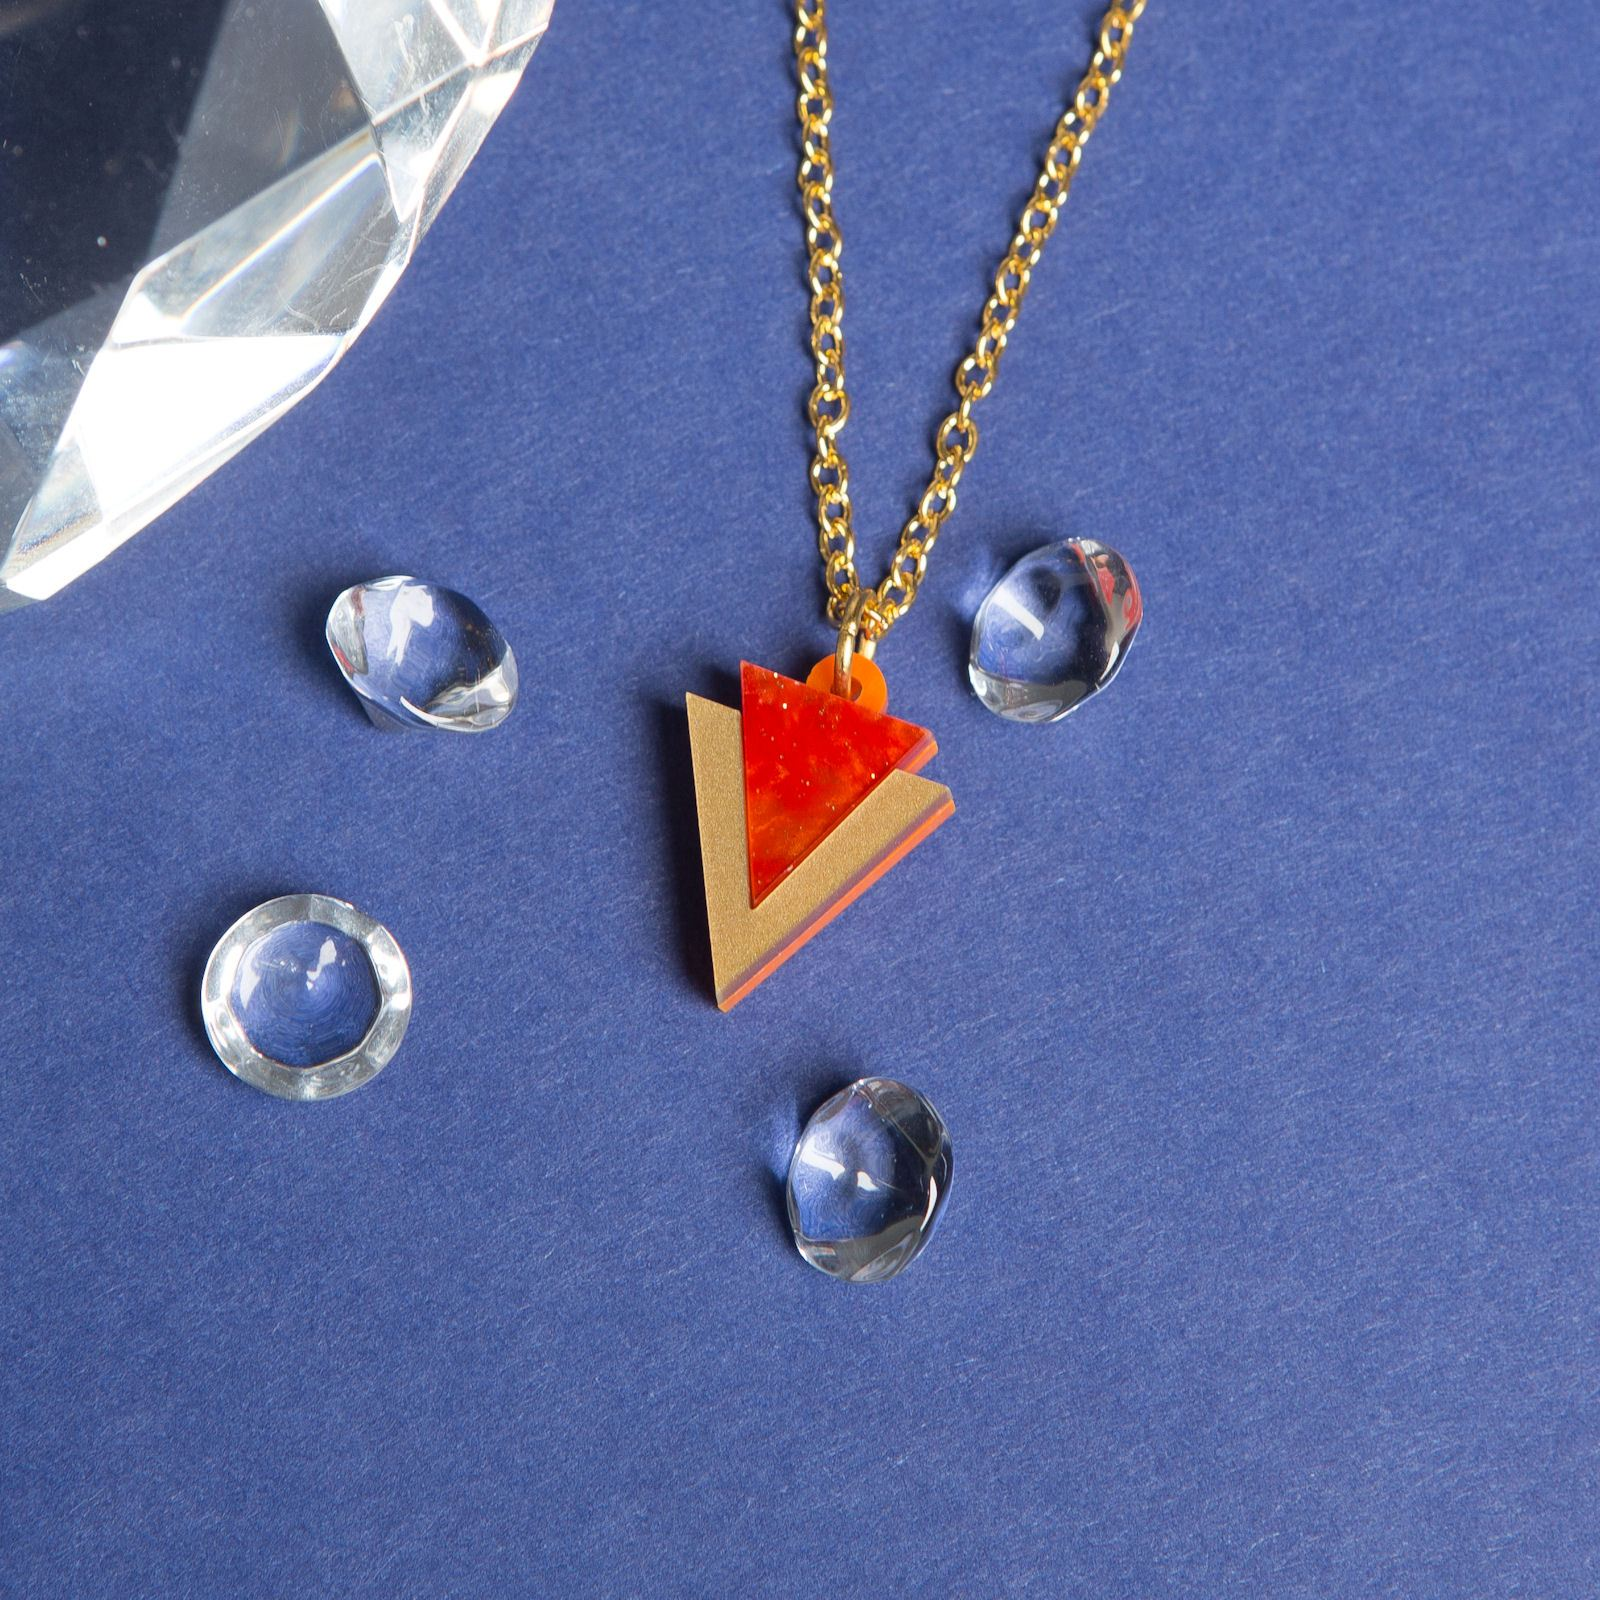 Sugar & Vice Mini Orange Triangle necklace